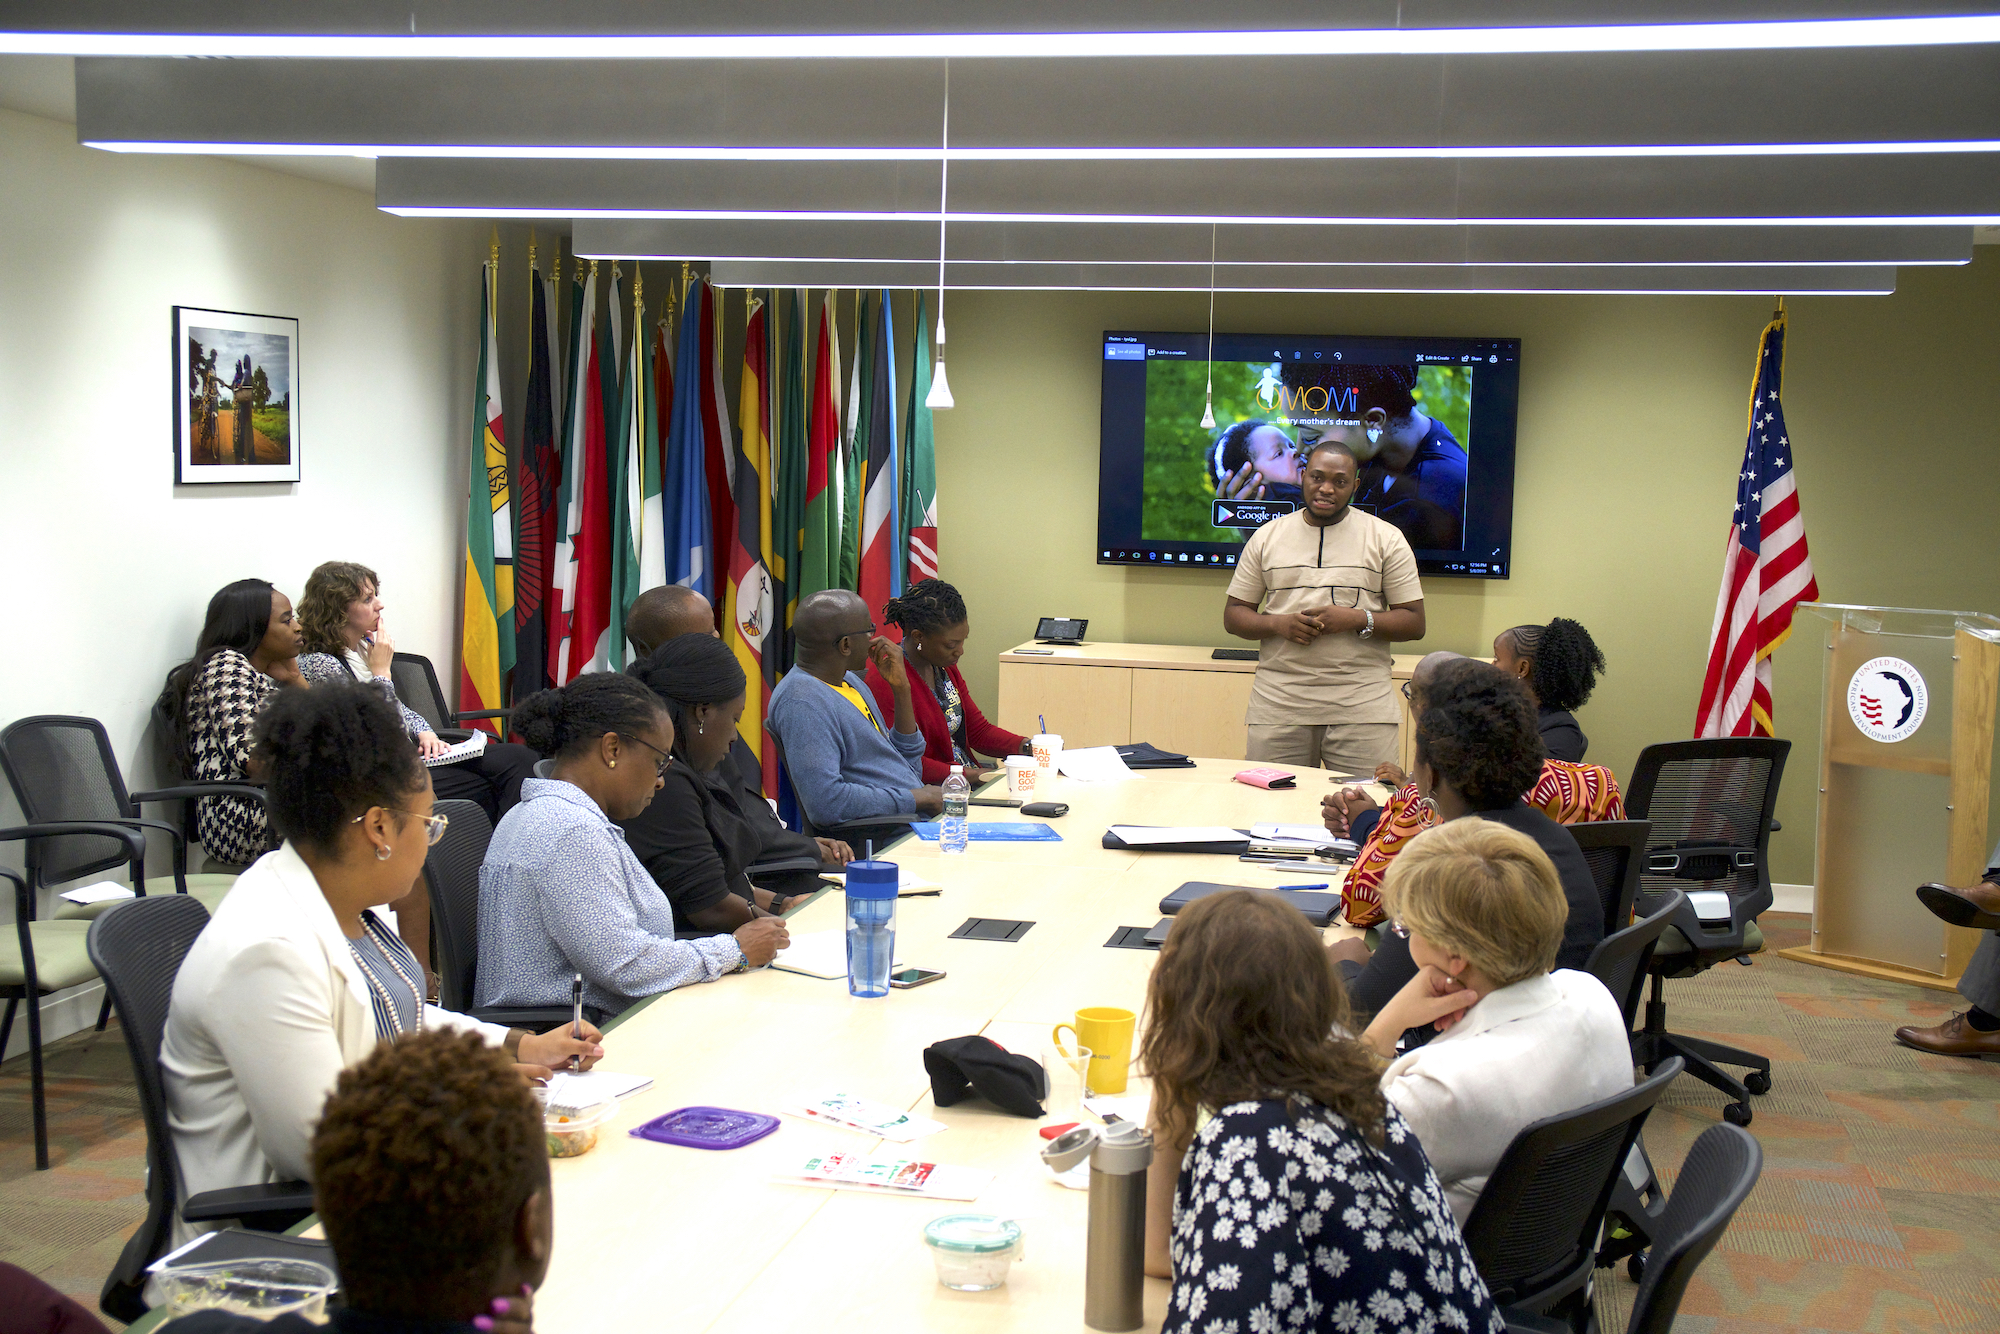 Charles Akhimien, shown here presenting to USADF staff, has developed mobile apps to address health care challenges in Africa.